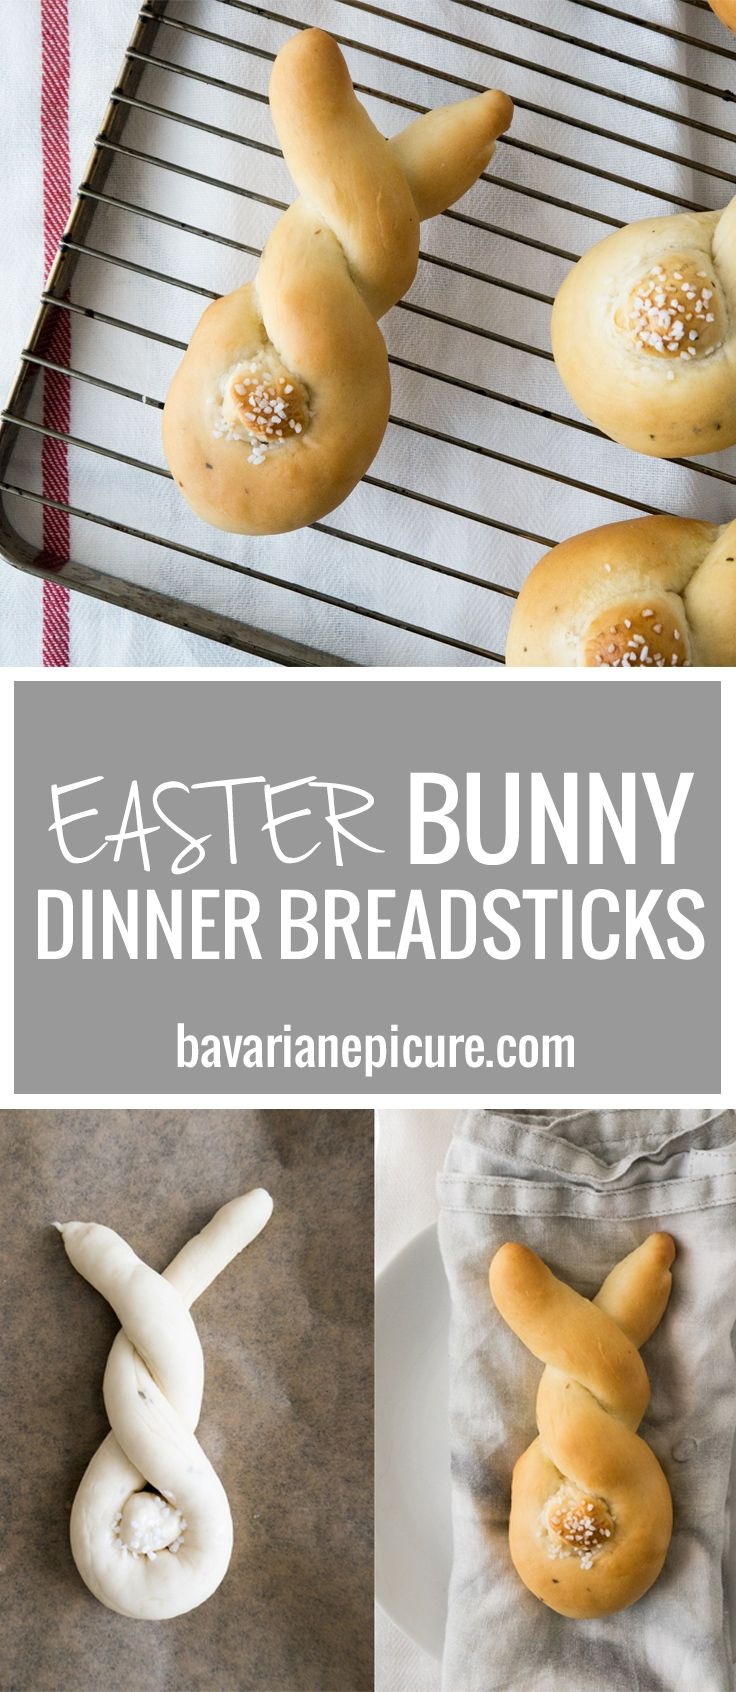 These Easter Bunny Dinner Breadsticks are so easy to make and perfect for brunch or dinner!